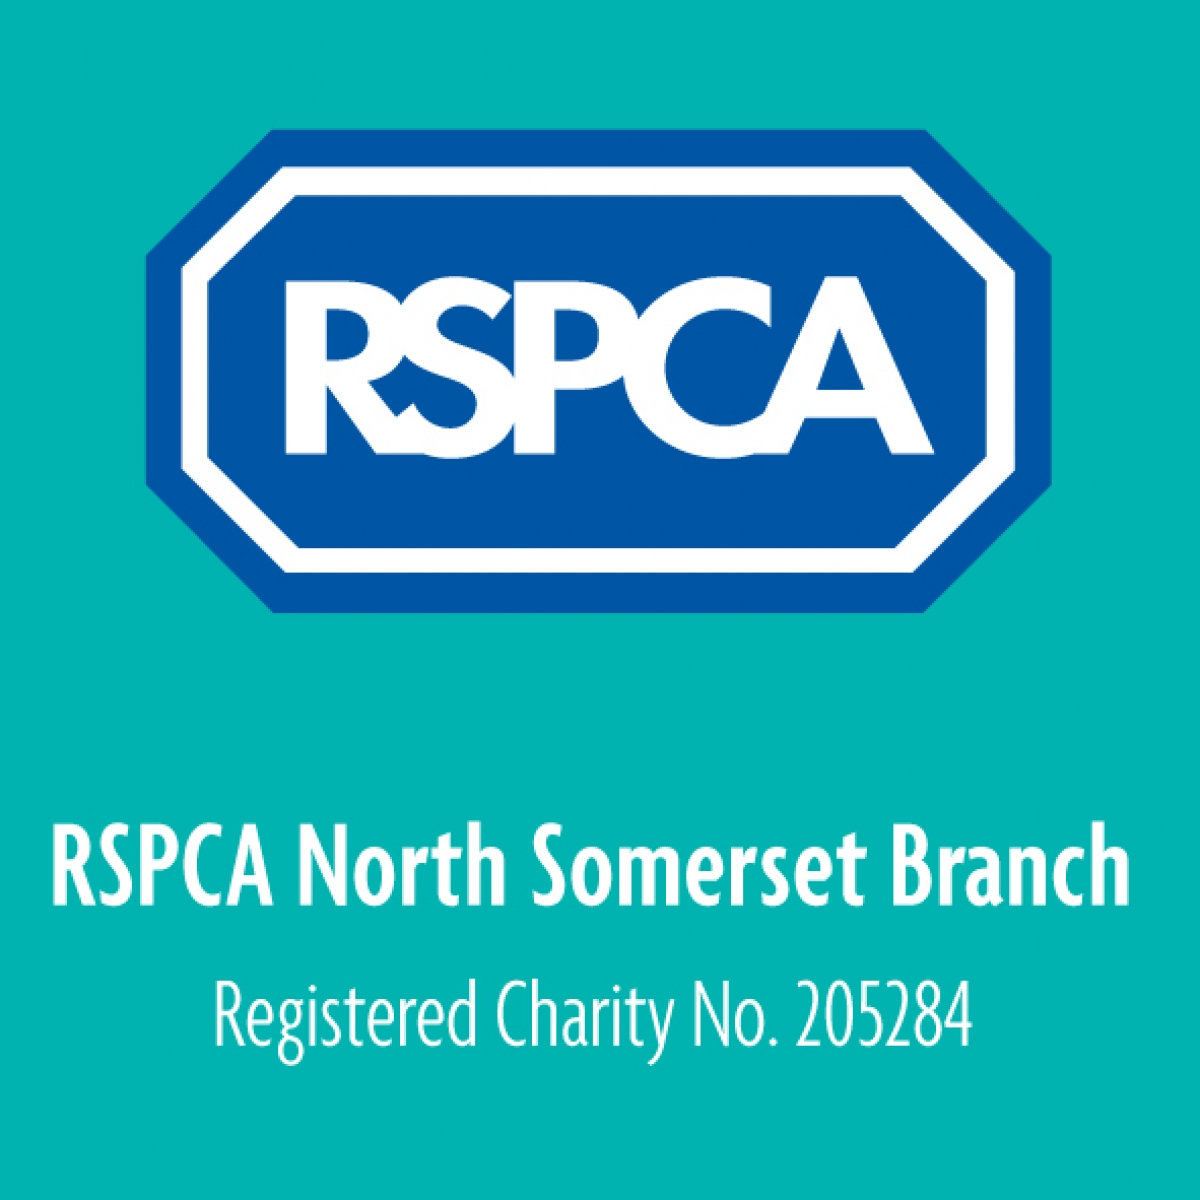 RSPCA North Somerset Branch eCards